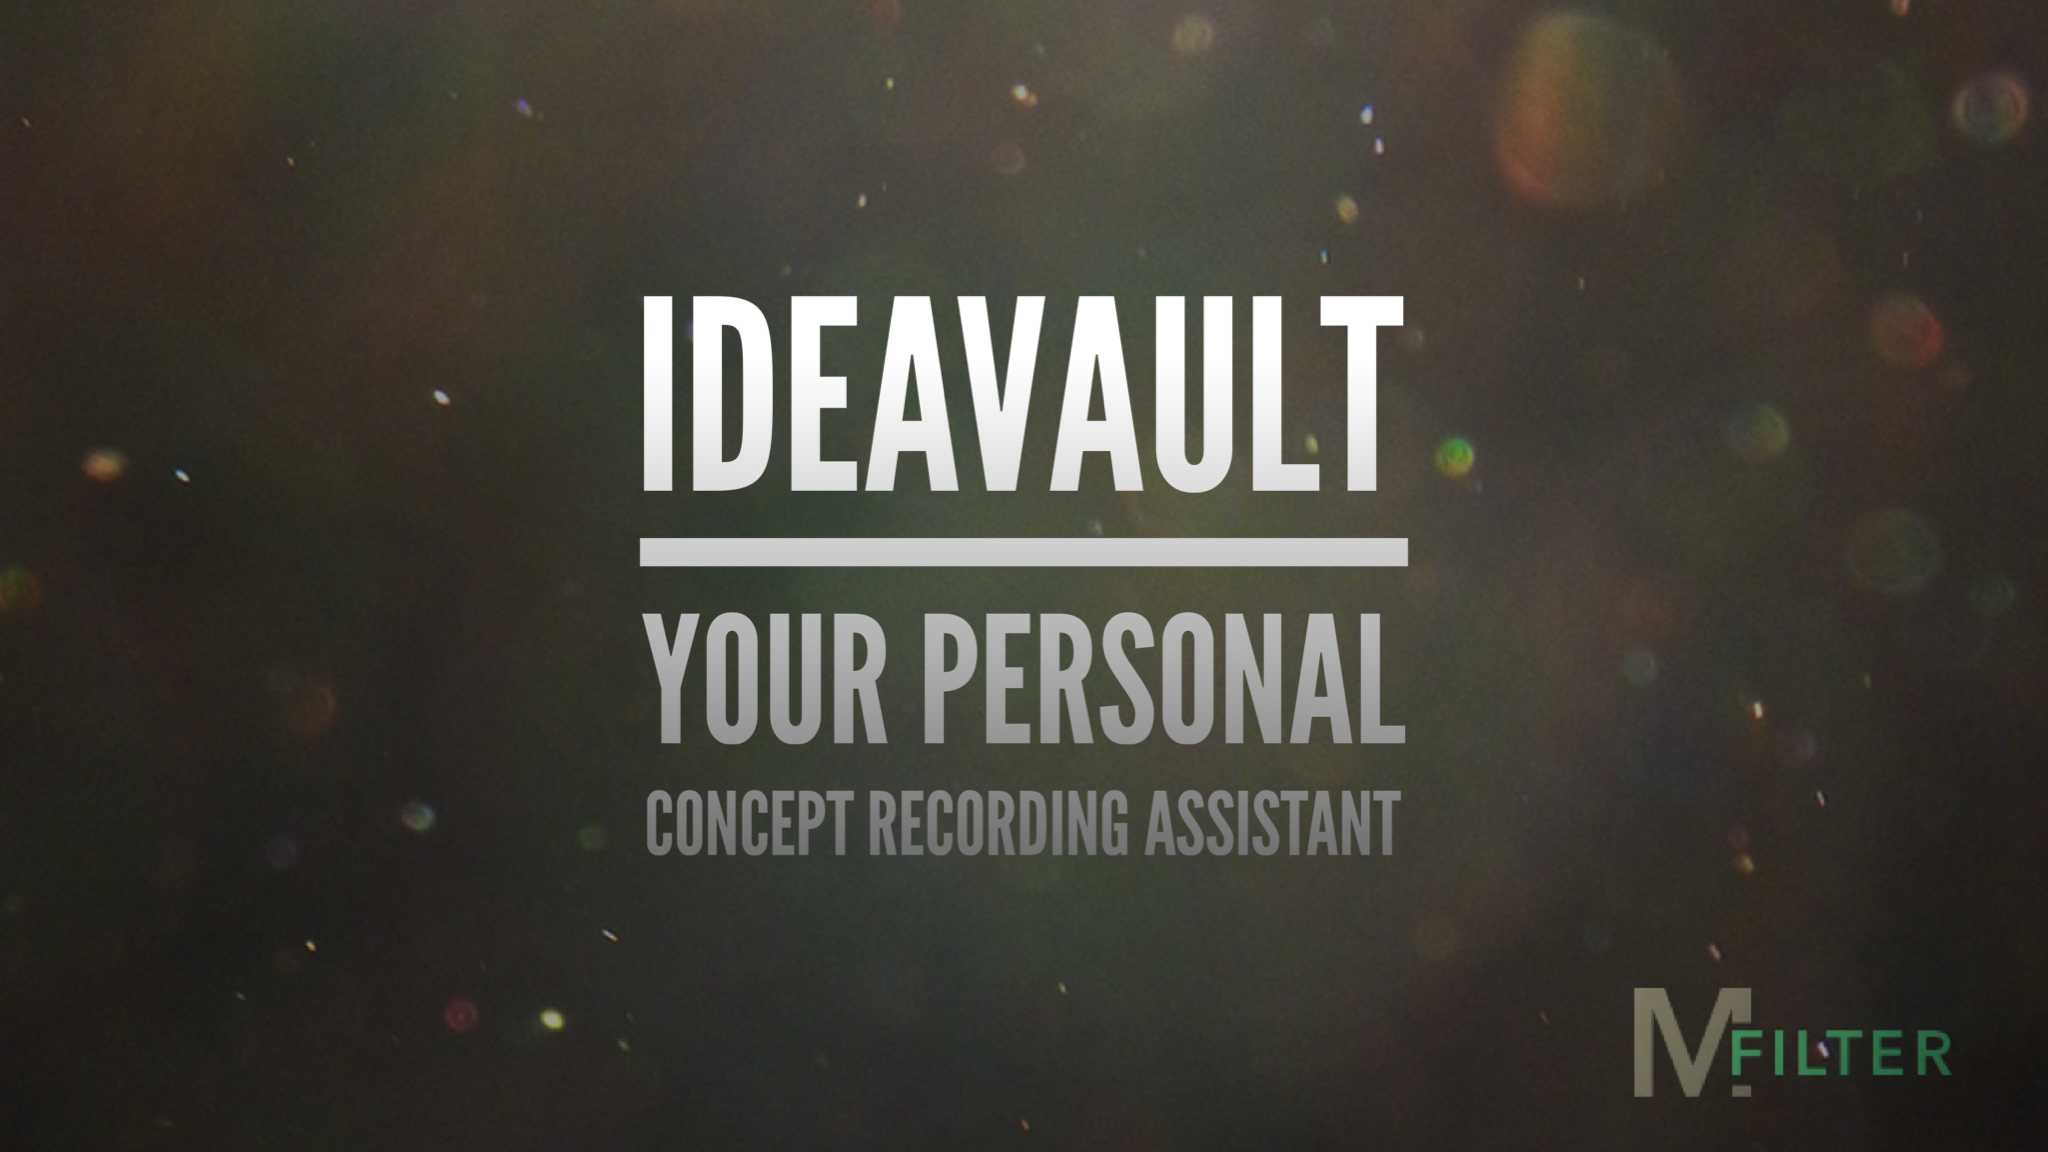 Hero Image displaying the title and subtitle of IdeaVault with a gradient shadow cast upon the letters